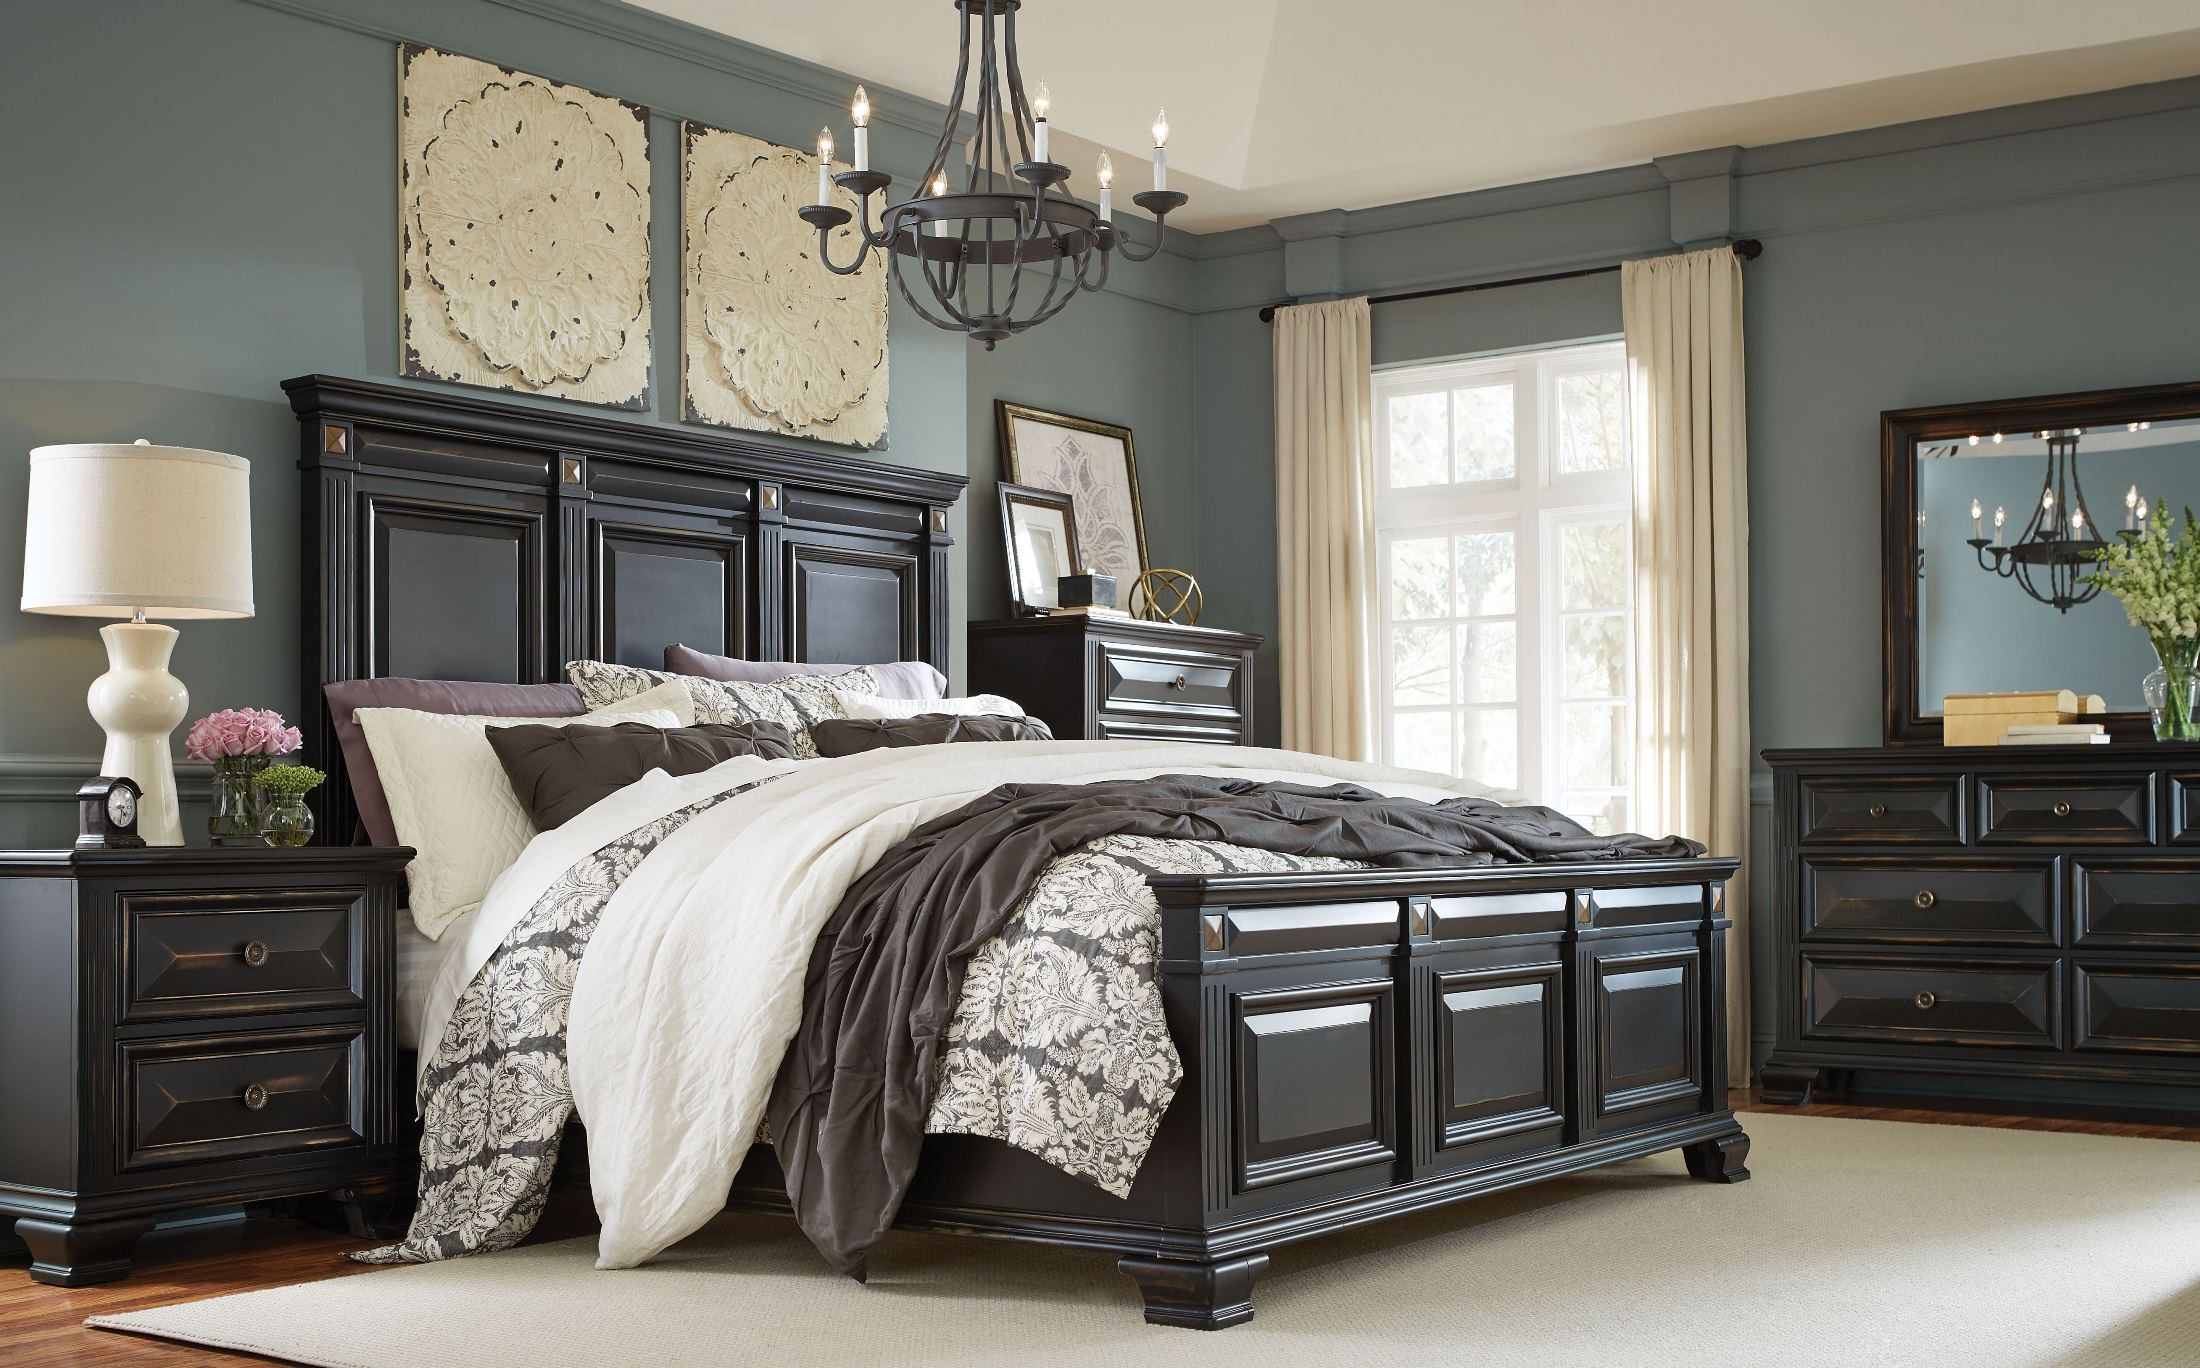 Passages vintage black panel bedroom set from standard for 5 bedroom